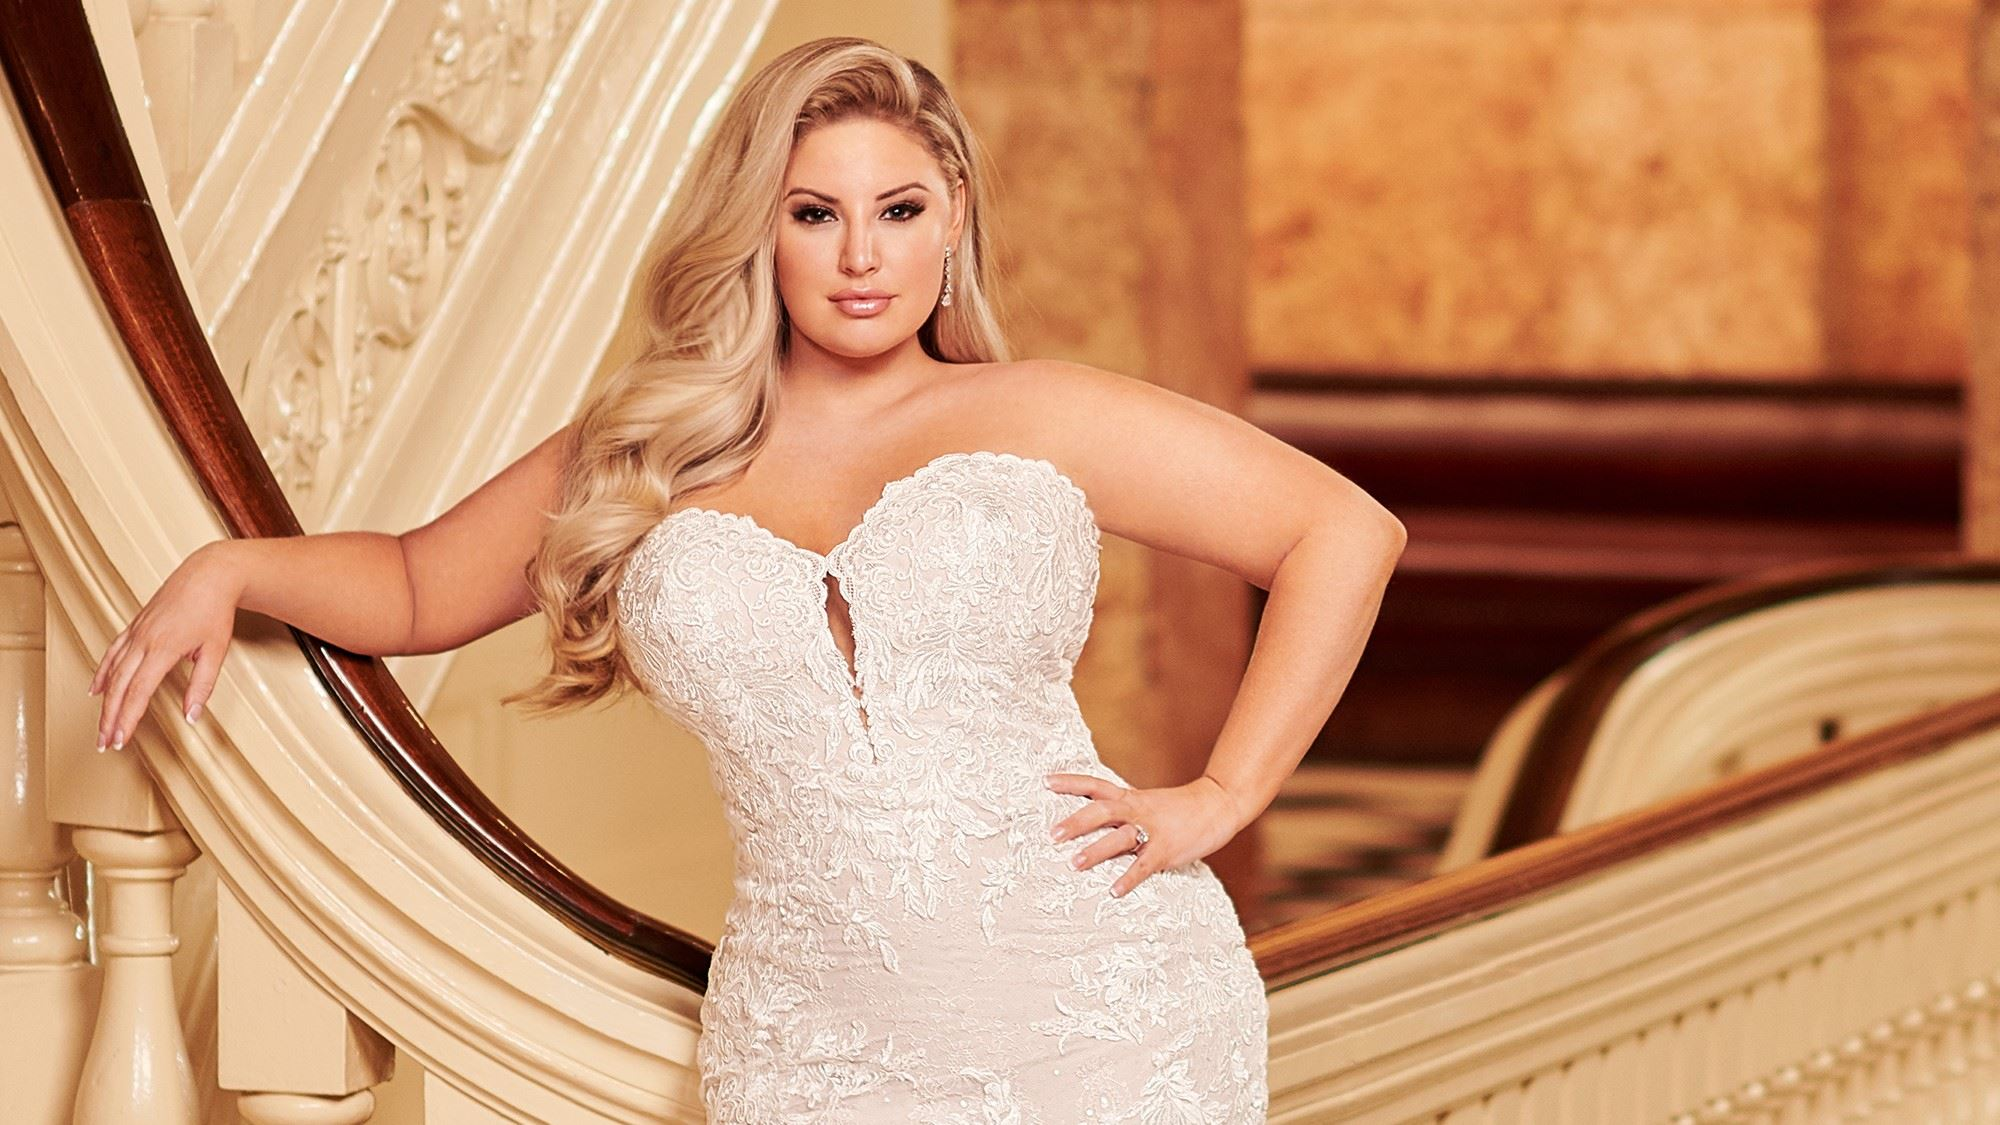 Find the Perfect Plus Size Wedding Dress Based On Your Own Unique Bridal Style